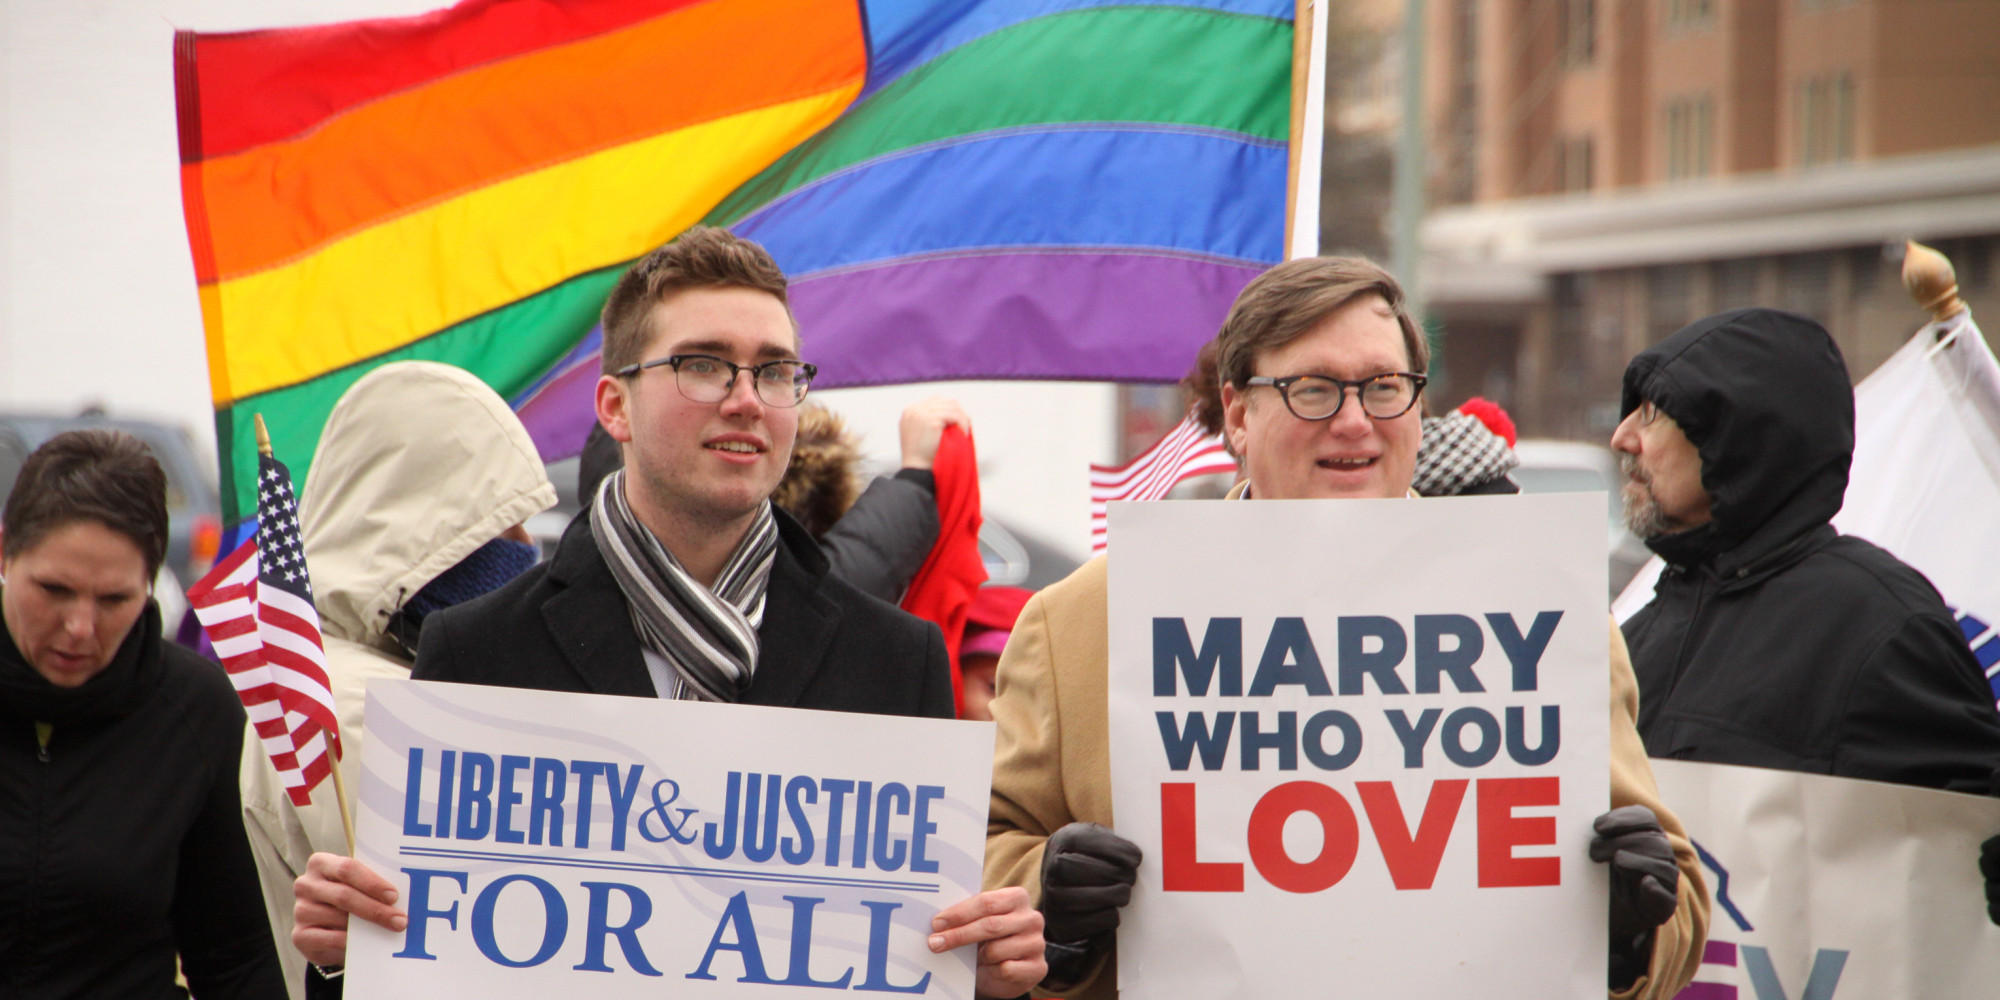 NORFOLK, VA - FEBRUARY 4: Spencer Geiger (left) and Carl Johansen protest for equal marriage outside the Walter E. Hoffman U.S. Courthouse as oral arguments in the case of Bostic v Rainey proceed on February 4, 2014 in Norfolk, Virginia, Virginia Attorney General Mark Herring has concluded that Virginia's ban on gay marriage is unconstitutional and he will no longer defend it in federal lawsuits. Jay Paul/Getty Images/AFP